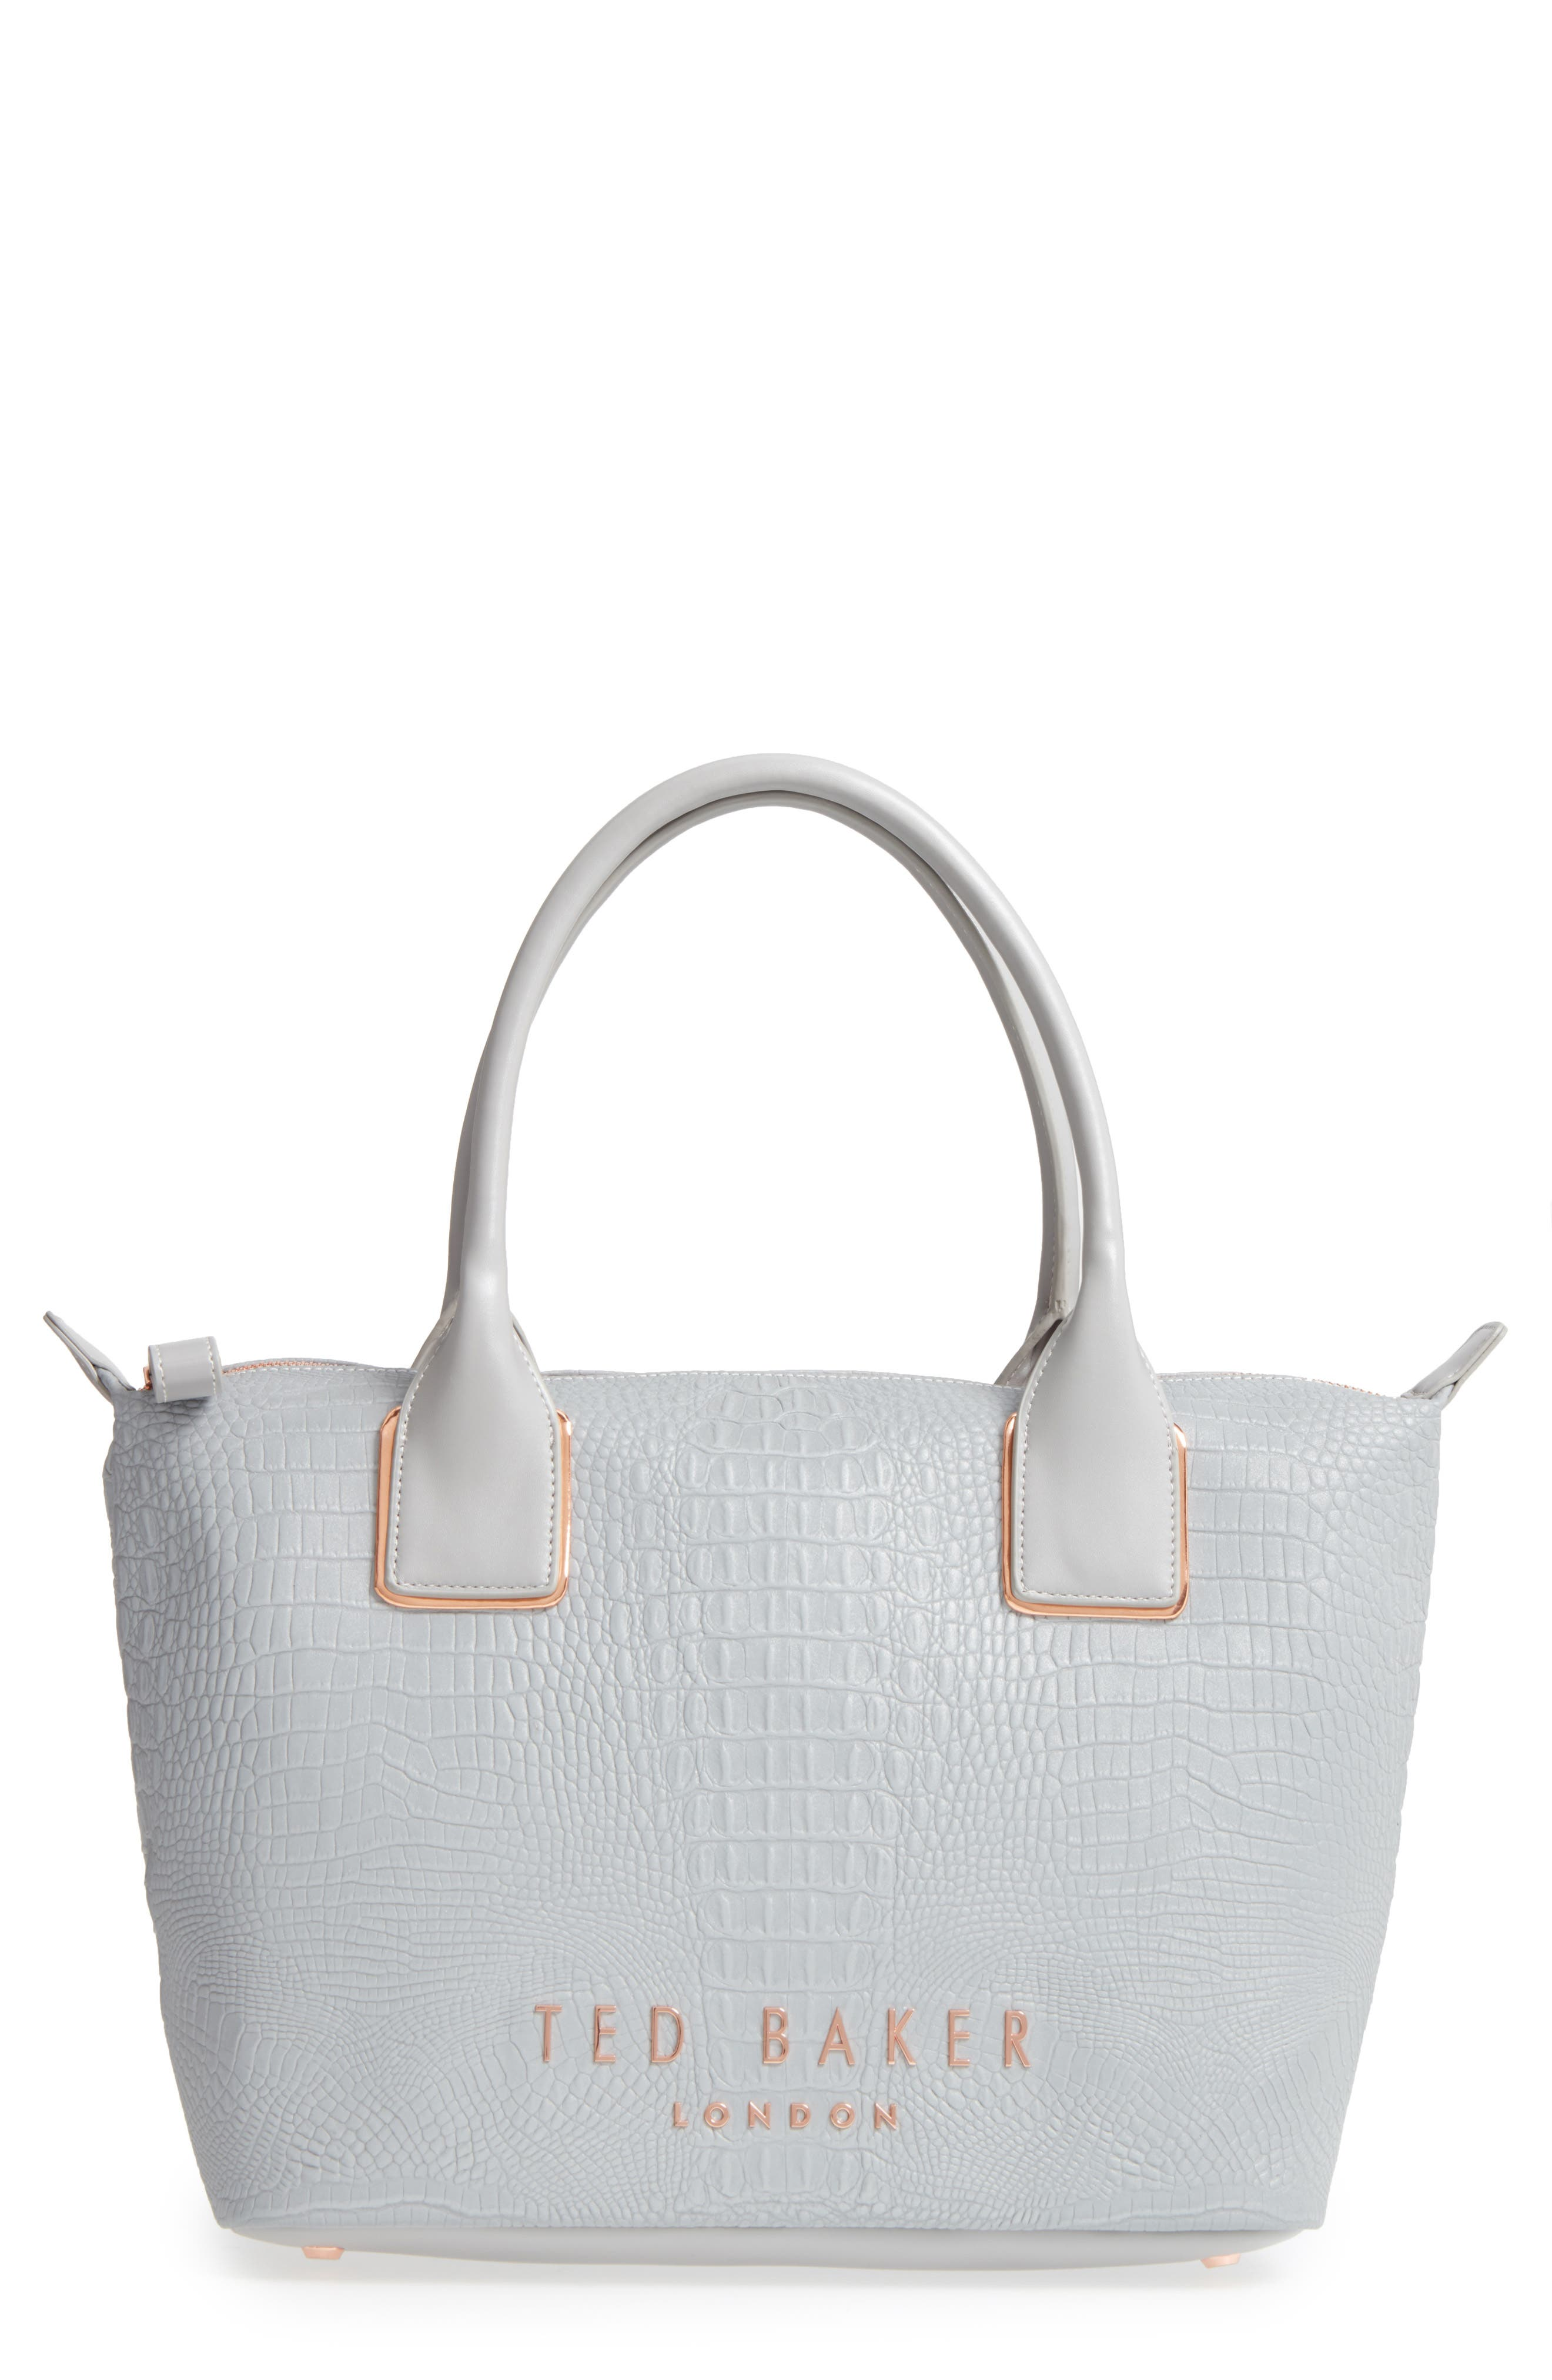 Ted Baker London Remus Reflective Croc Embossed Faux Leather Tote